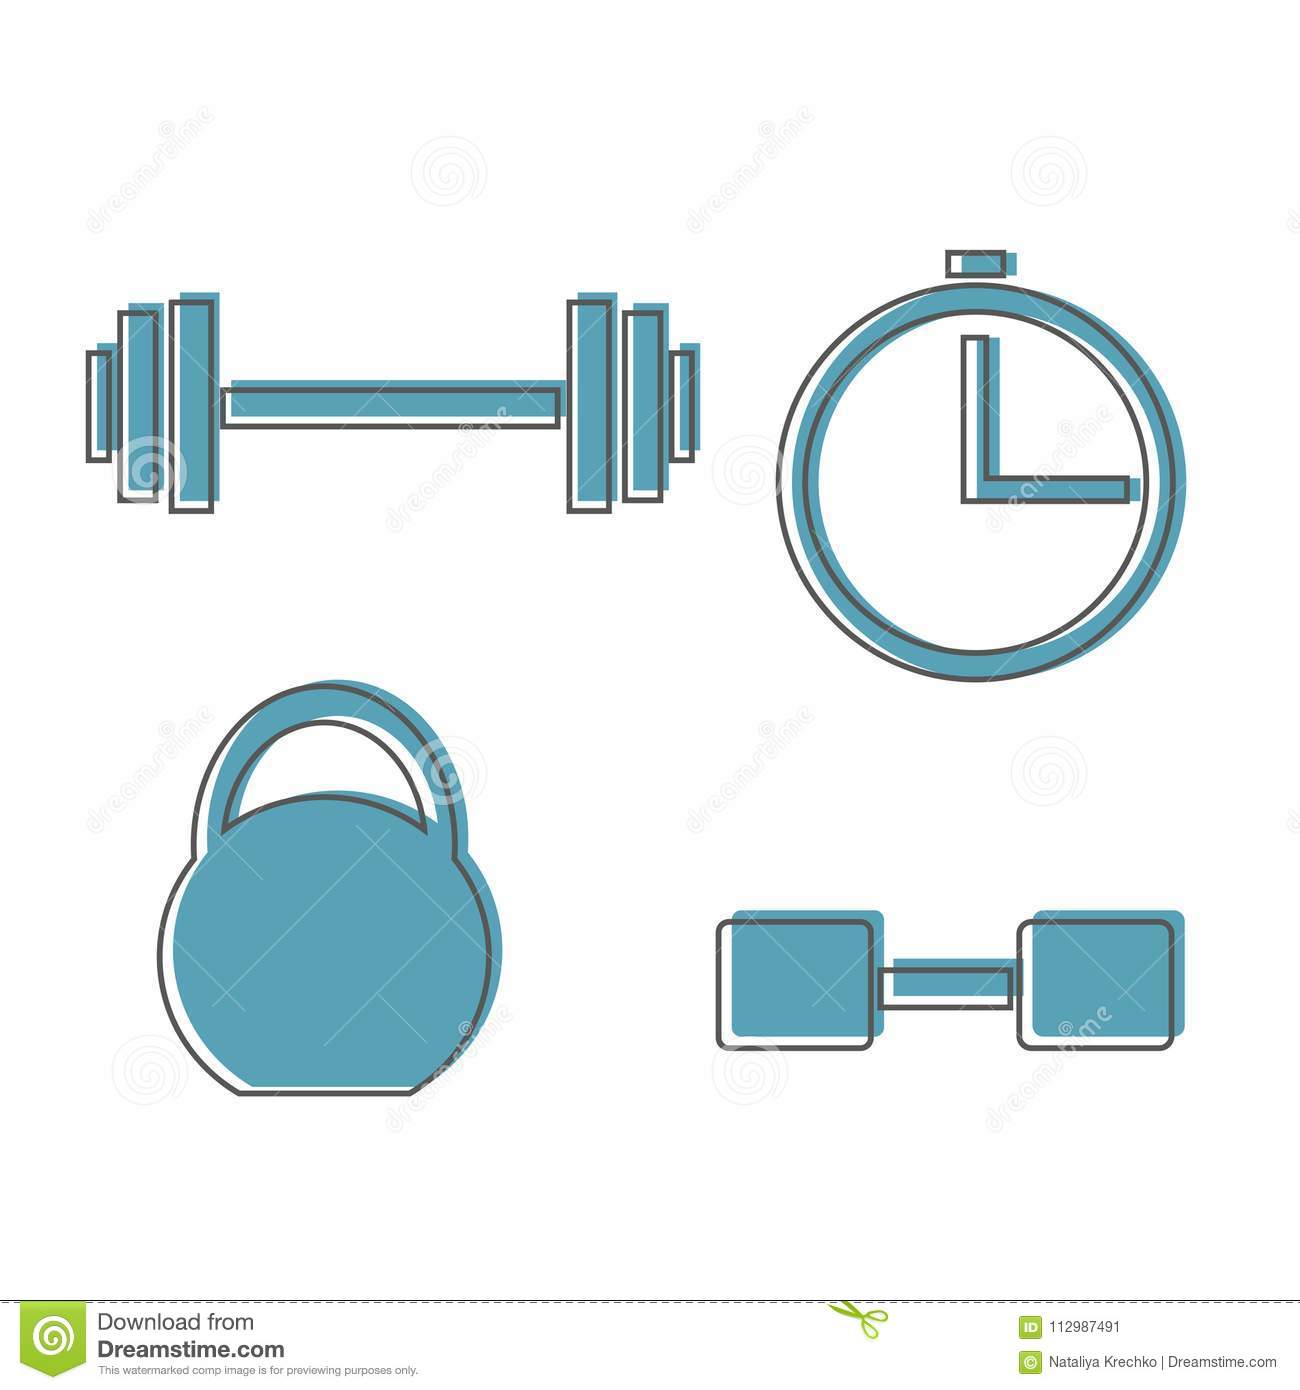 Muscle lifting icon, fitness barbell, gym icon, exercise dumbbells isolated